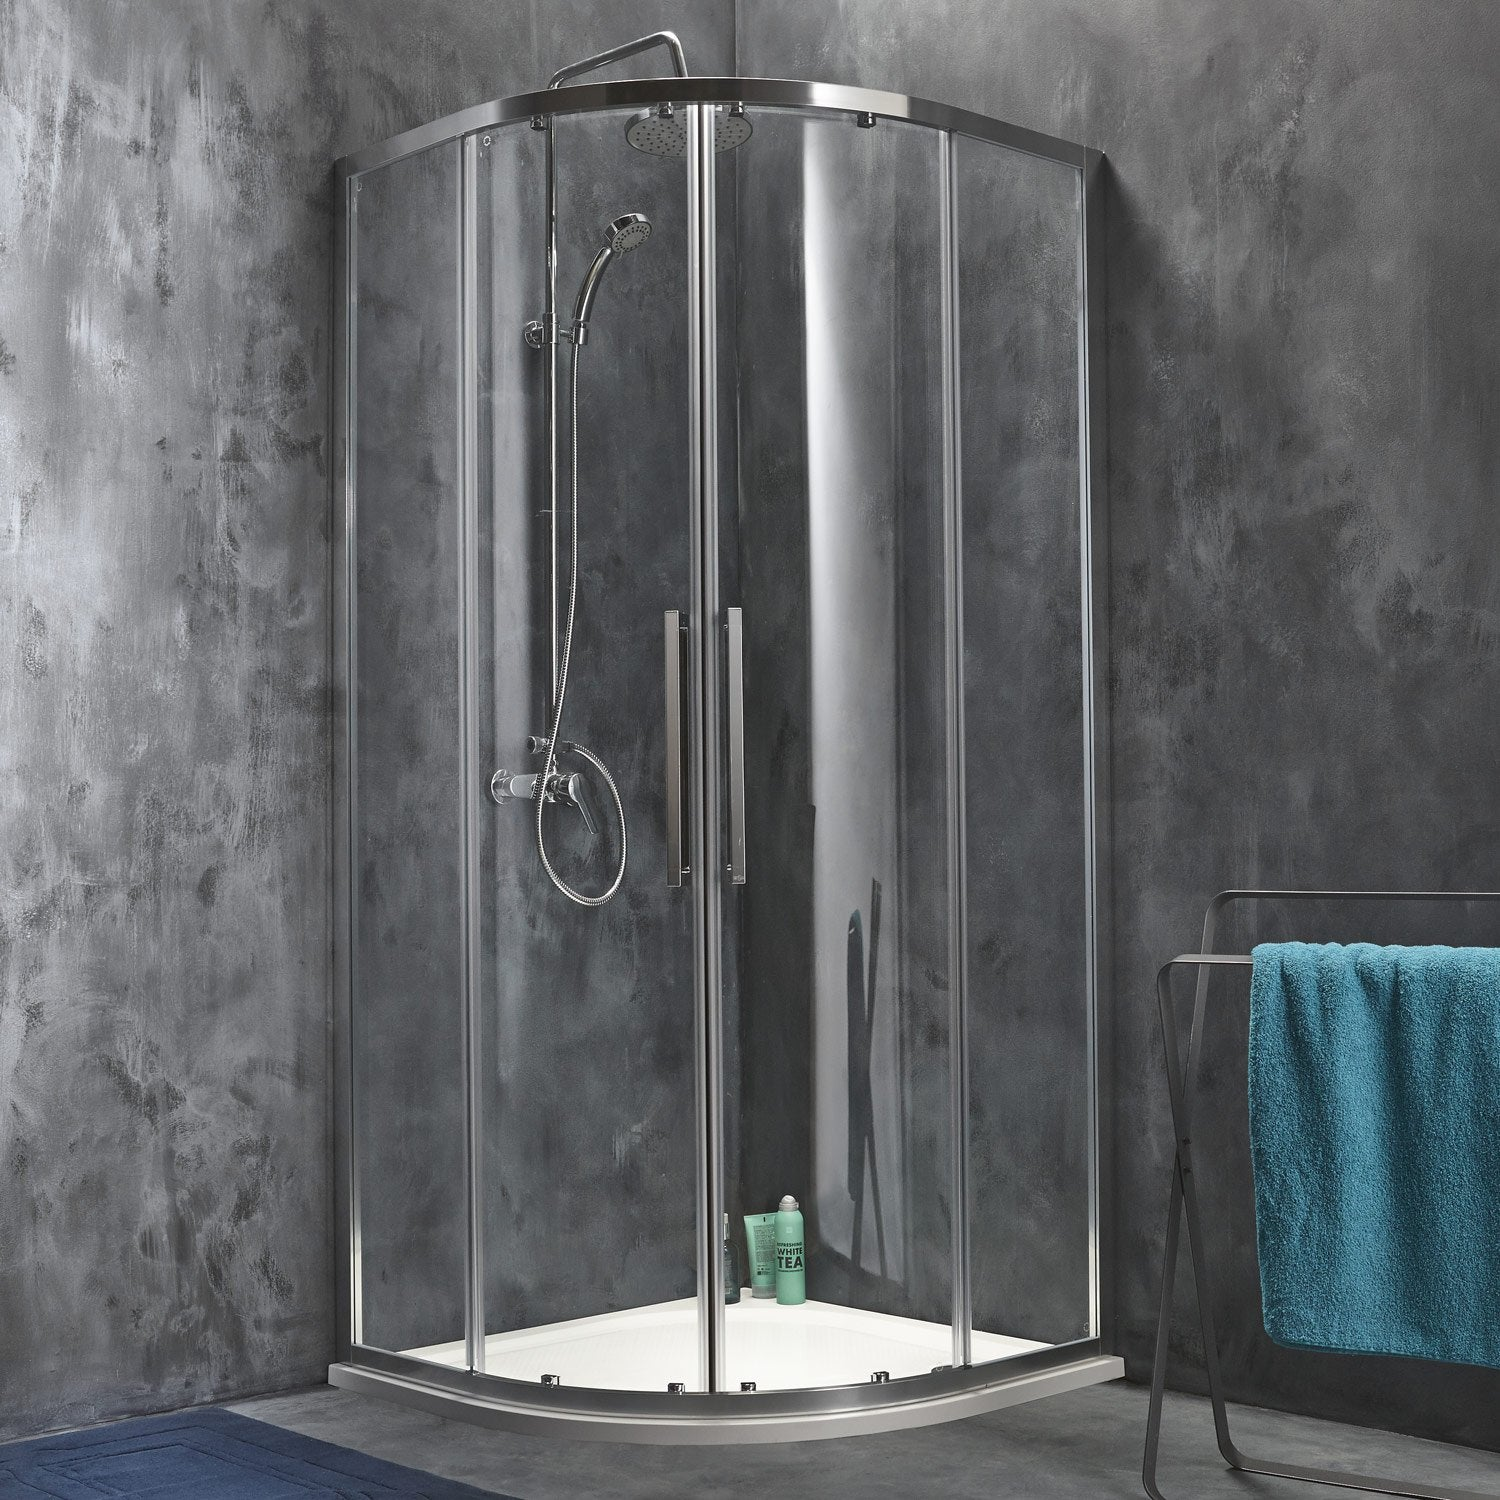 Porte de douche coulissante sensea purity 3 verre transparent chrom leroy - Porte douche battant verre ...